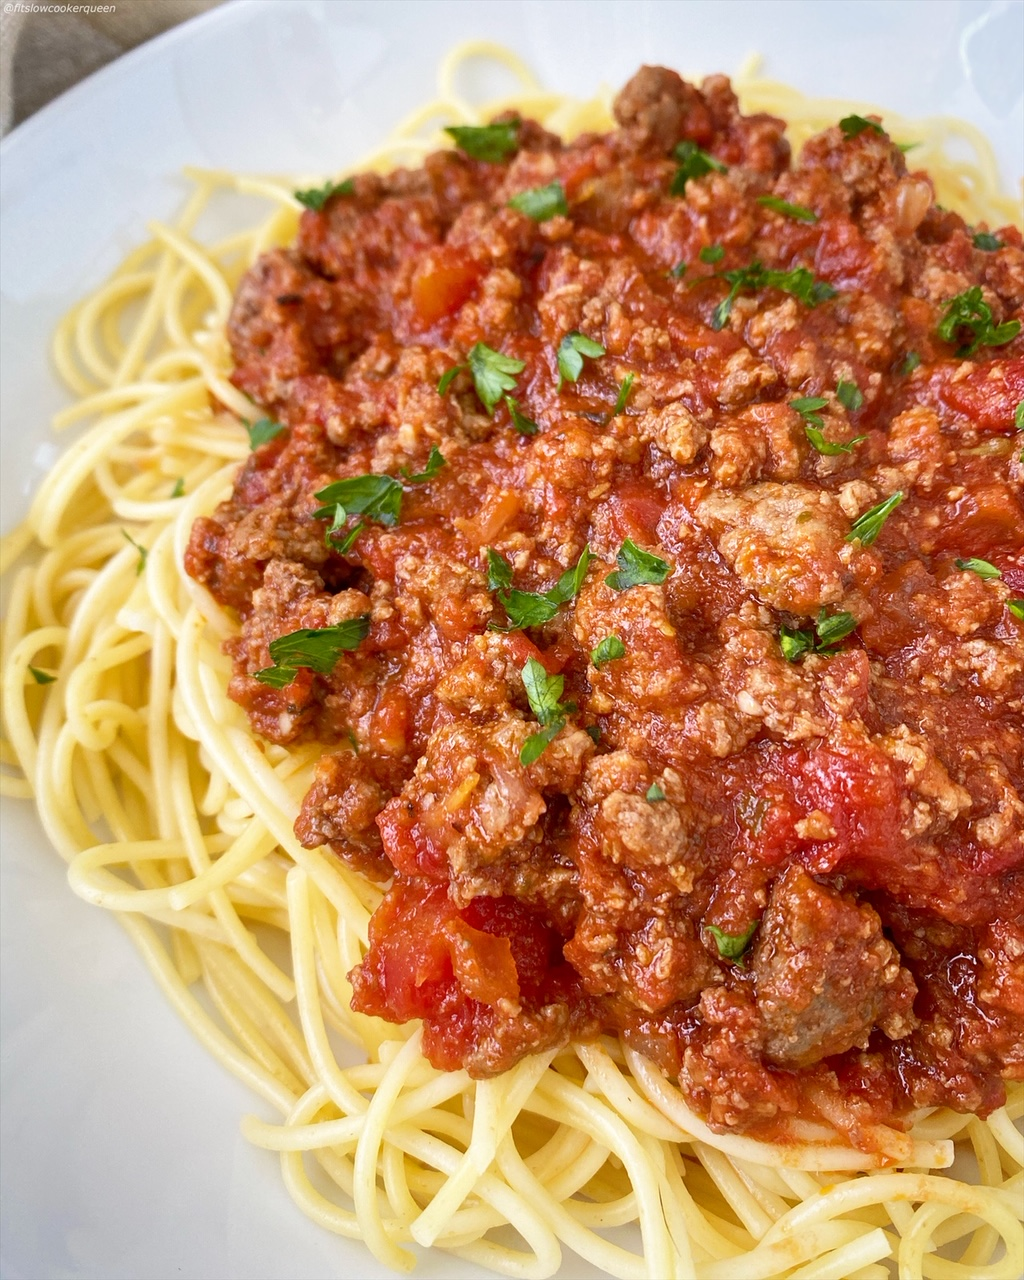 meat sauce over spaghetti noodles in a white bowl